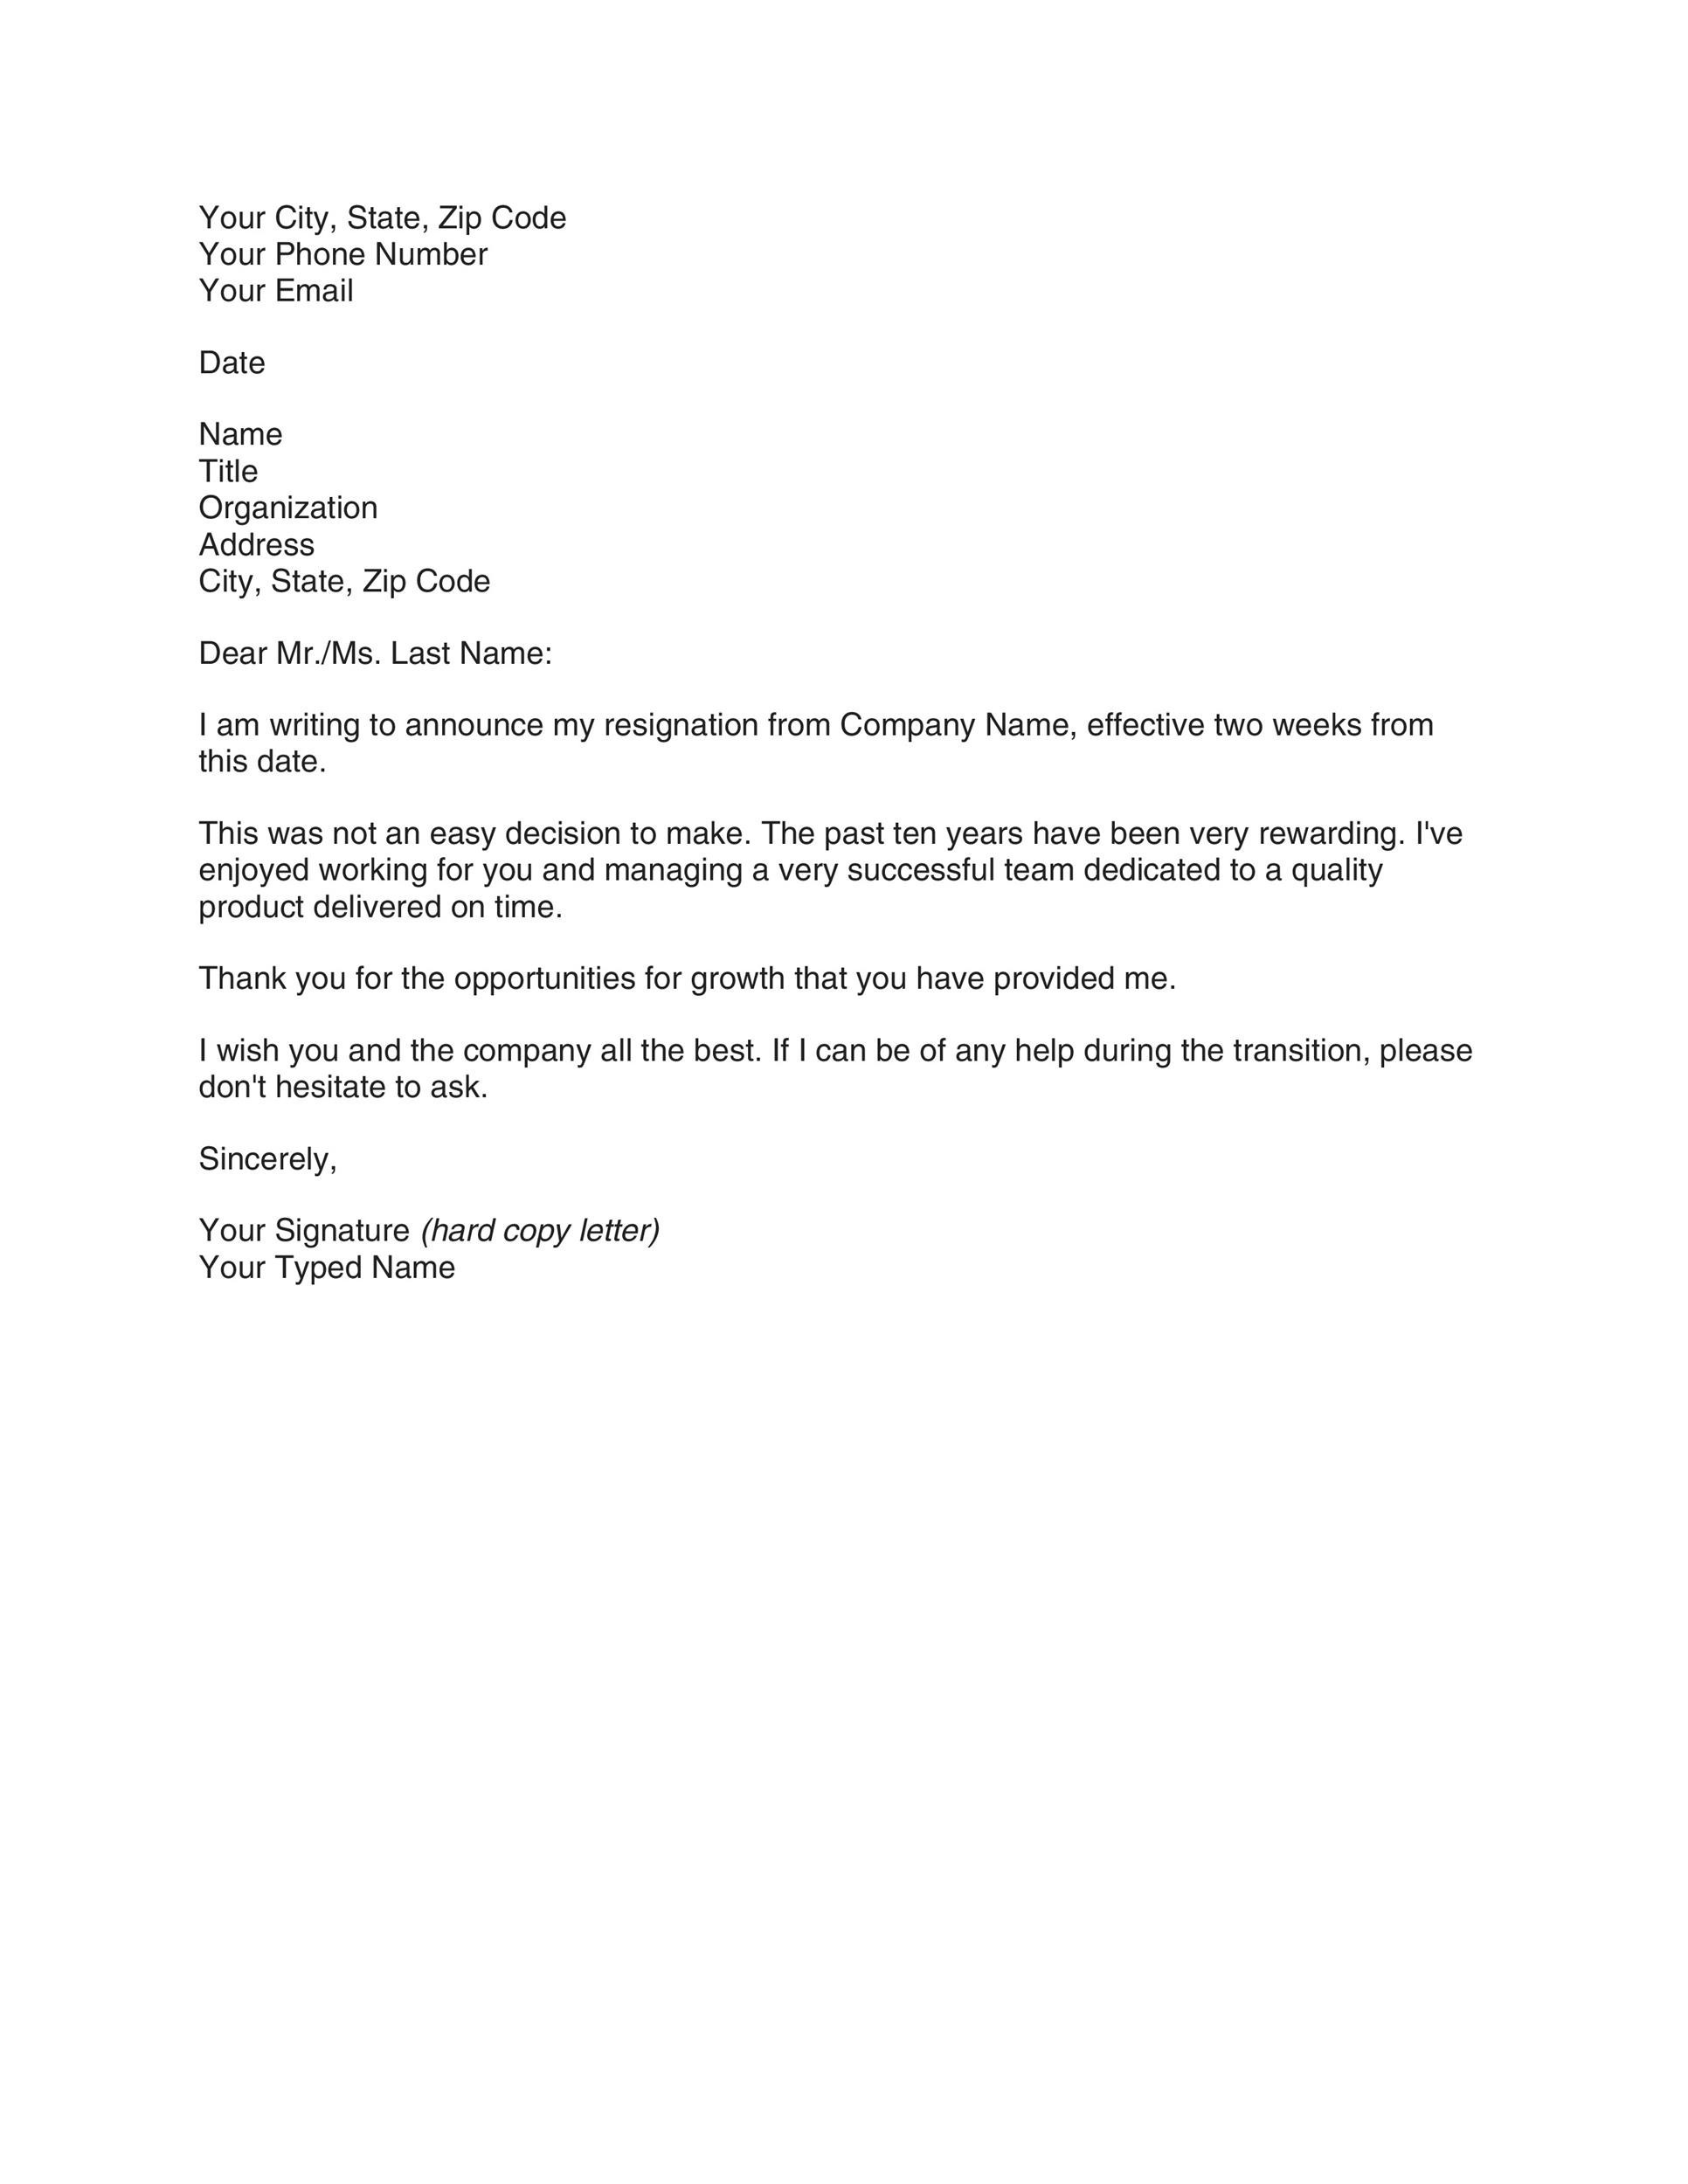 Letter Customers Announcing Change